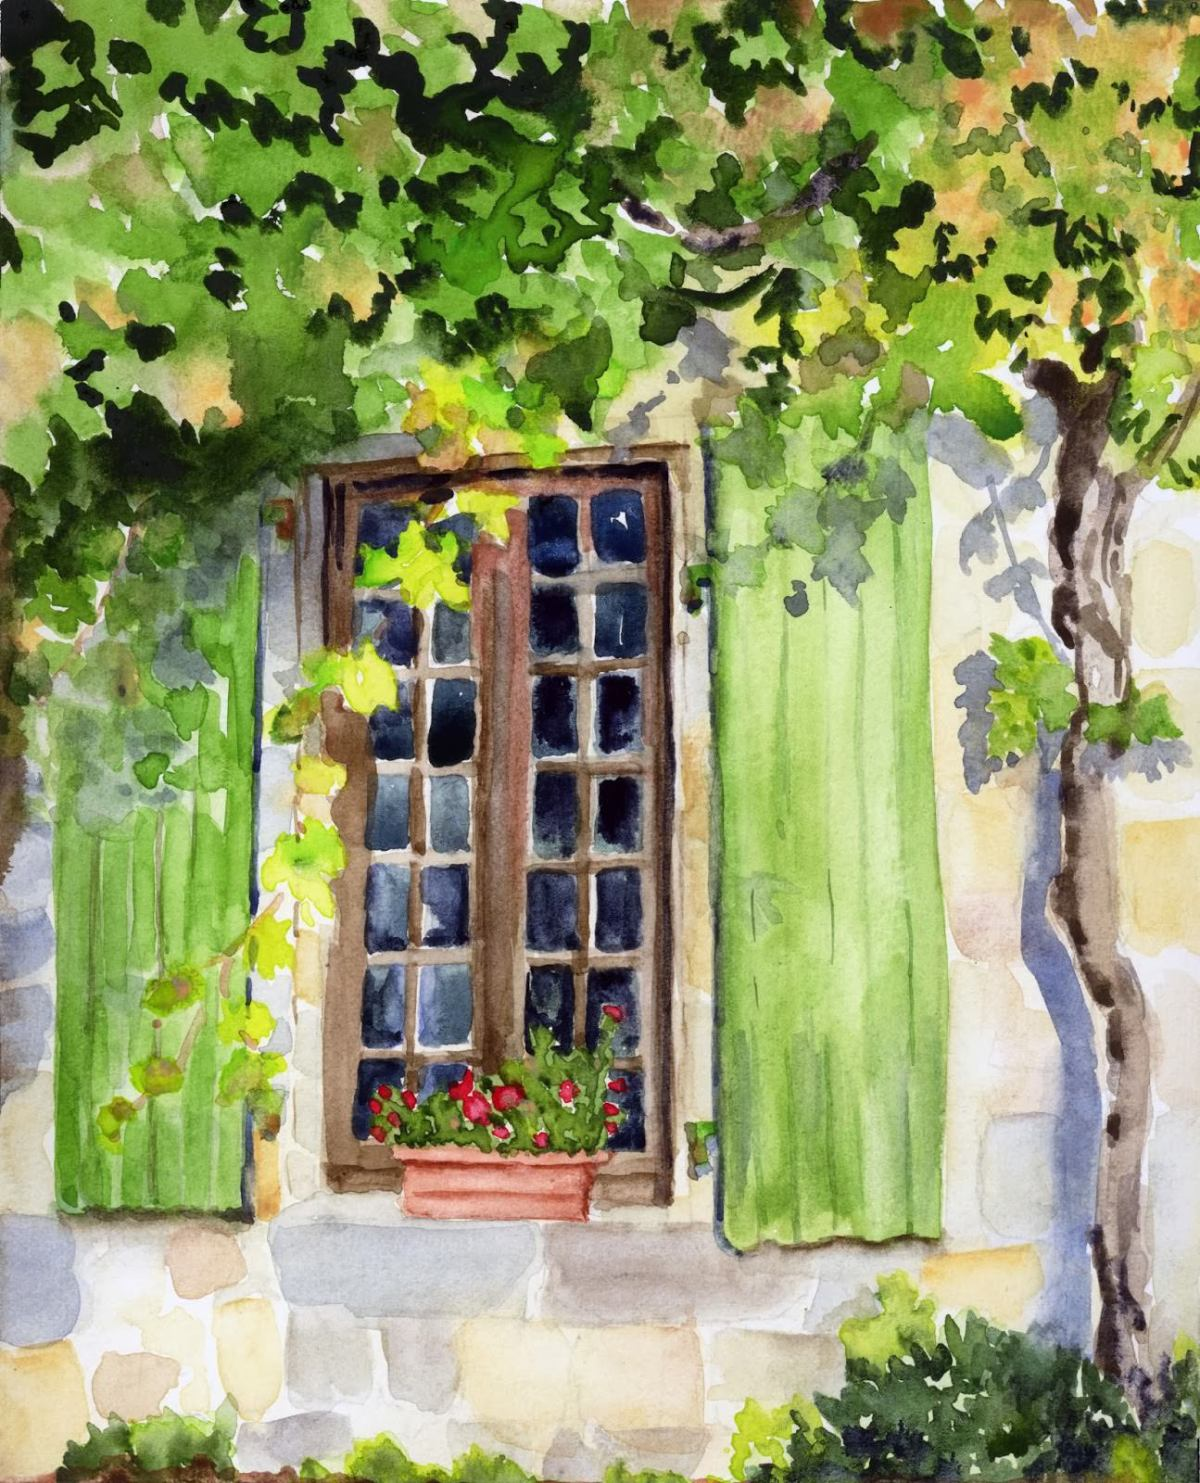 Doodlewash and watercolor sketch by Meliessa Garrison Elliott of Bandouille Window